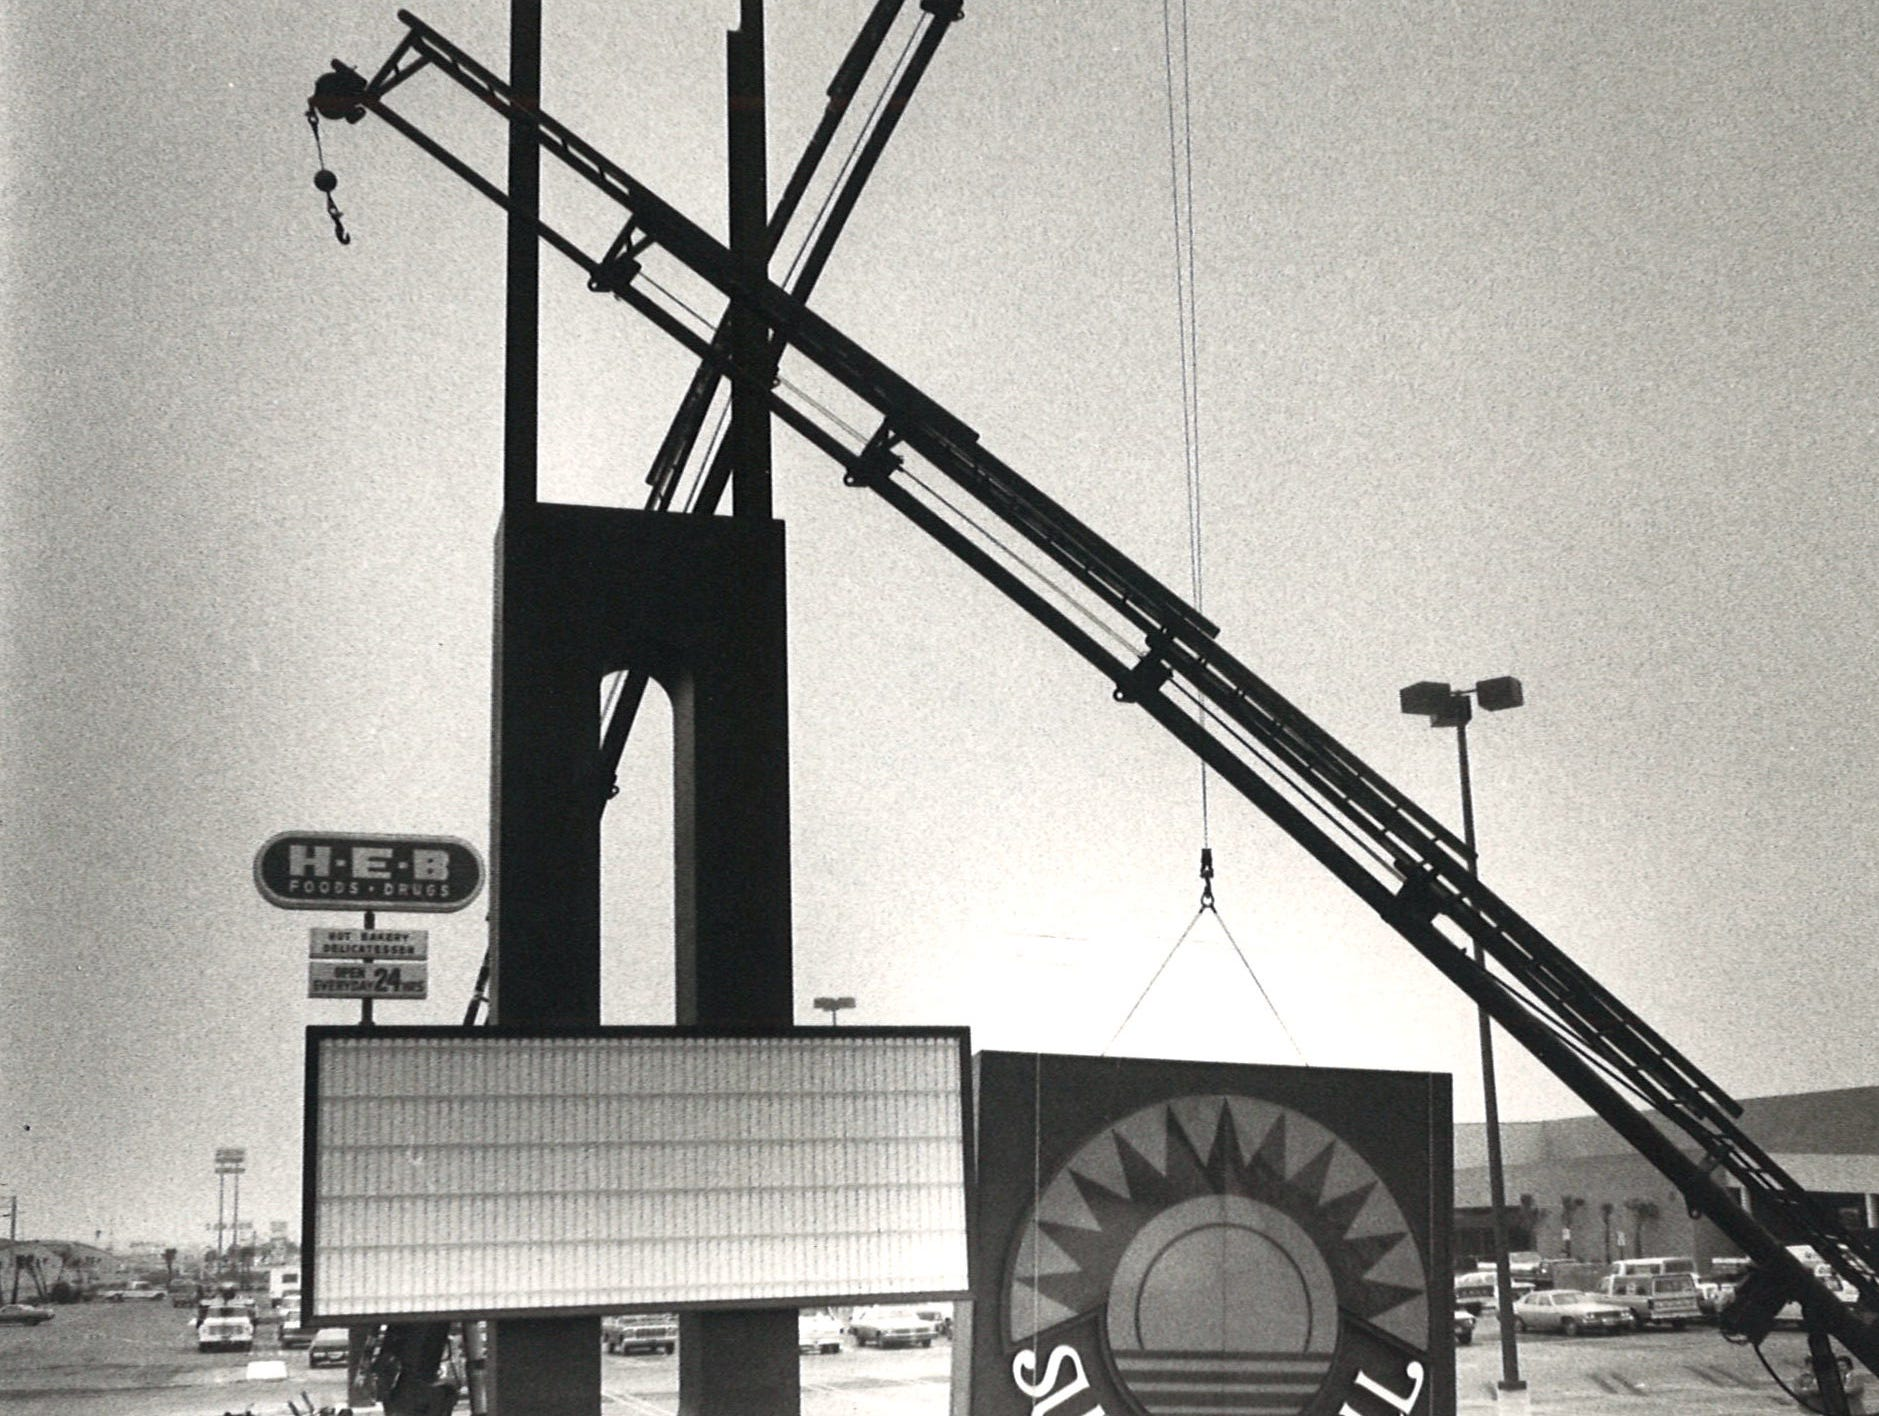 The sign for Sunrise Mall is put in place in February 1981.